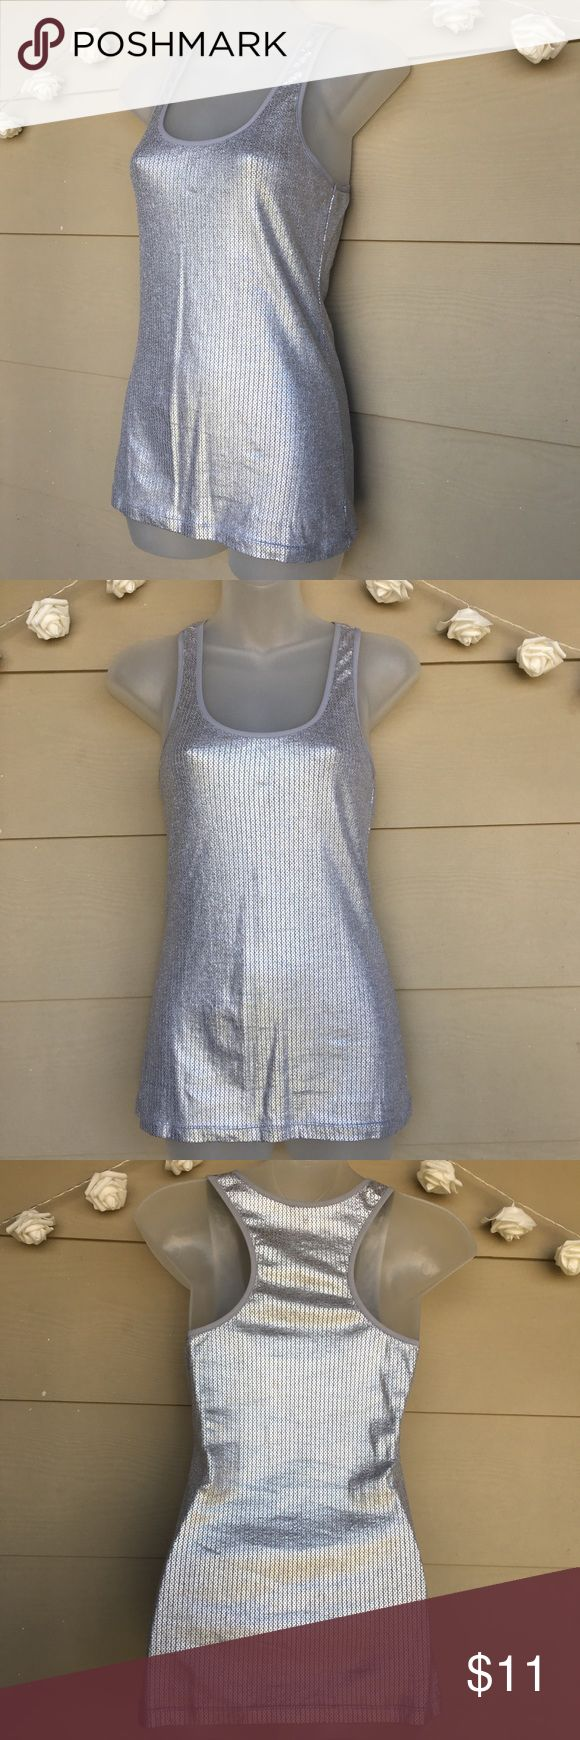 Energie • Metallic Silver Gray Tank Top Energie • Metallic Silver Gray Tank Top  —Size = Medium  —In Excellent Pre-Owned Condition —Bright silver color with a metallic finish. Perfect tank to give your outfit a pop! —Approx. Measurements laying flat:  •Armpit to armpit=14in •Length=25in    ?? Questions ?? — Please ask! :)  •Offers & counteroffers always welcome.  •All packages shipped fast with love & care. •Happy Poshing!! Energie Tops